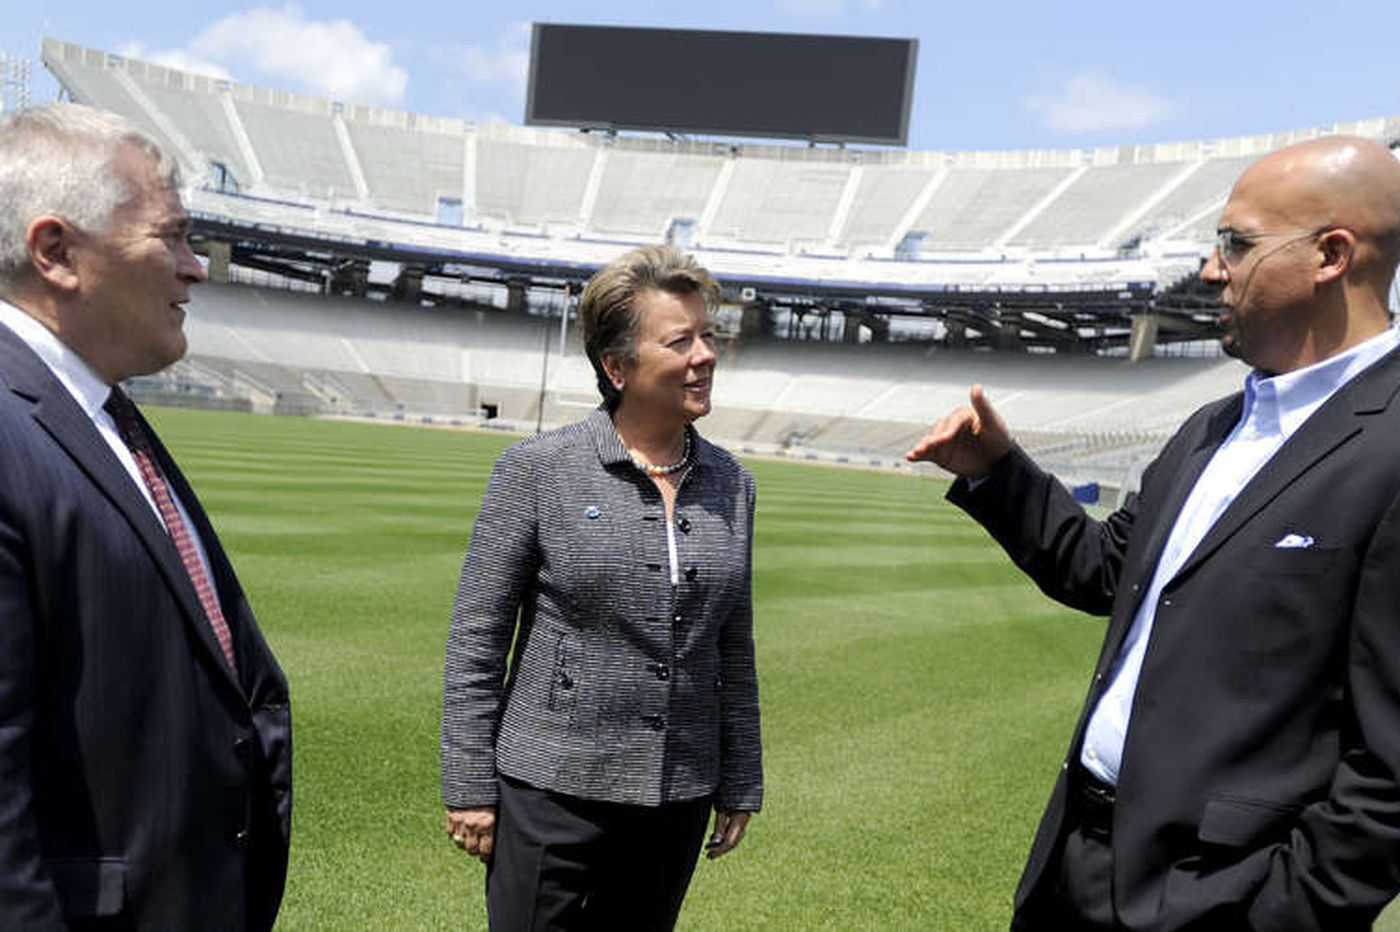 Penn State athletics VP Sandy Barbour says it's 'unclear' whether Big Ten took a vote on canceling football season